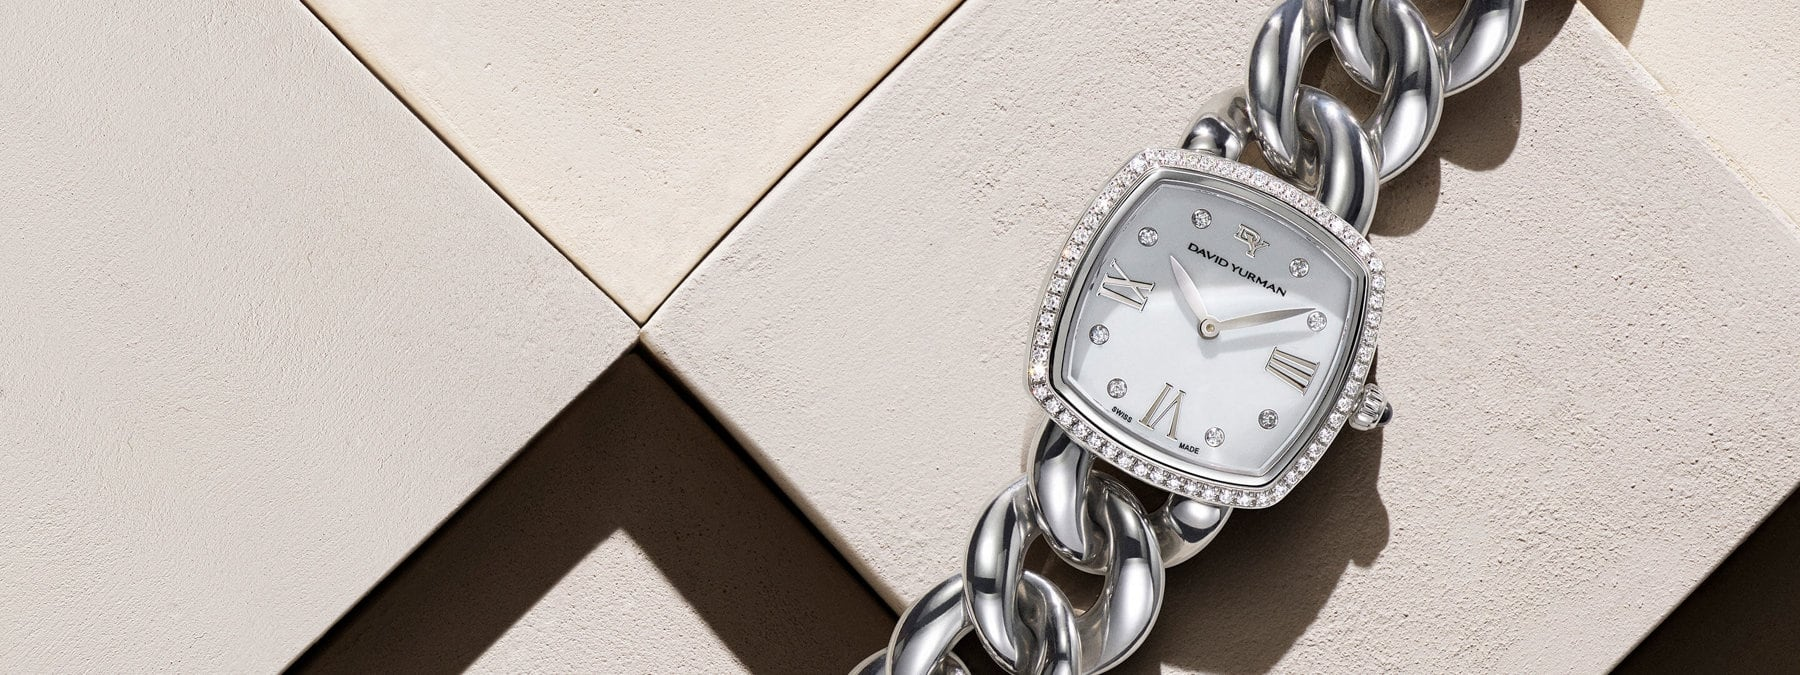 A color photograph shows a close-up of a David Yurman Classic women's watch atop a beige-hued stone backdrop with hard diagonal shadows. The bracelet watch is crafted from stainless steel with a ring of pavé diamonds around its mother-of-pearl face and six white diamonds set between roman numerals on its face.